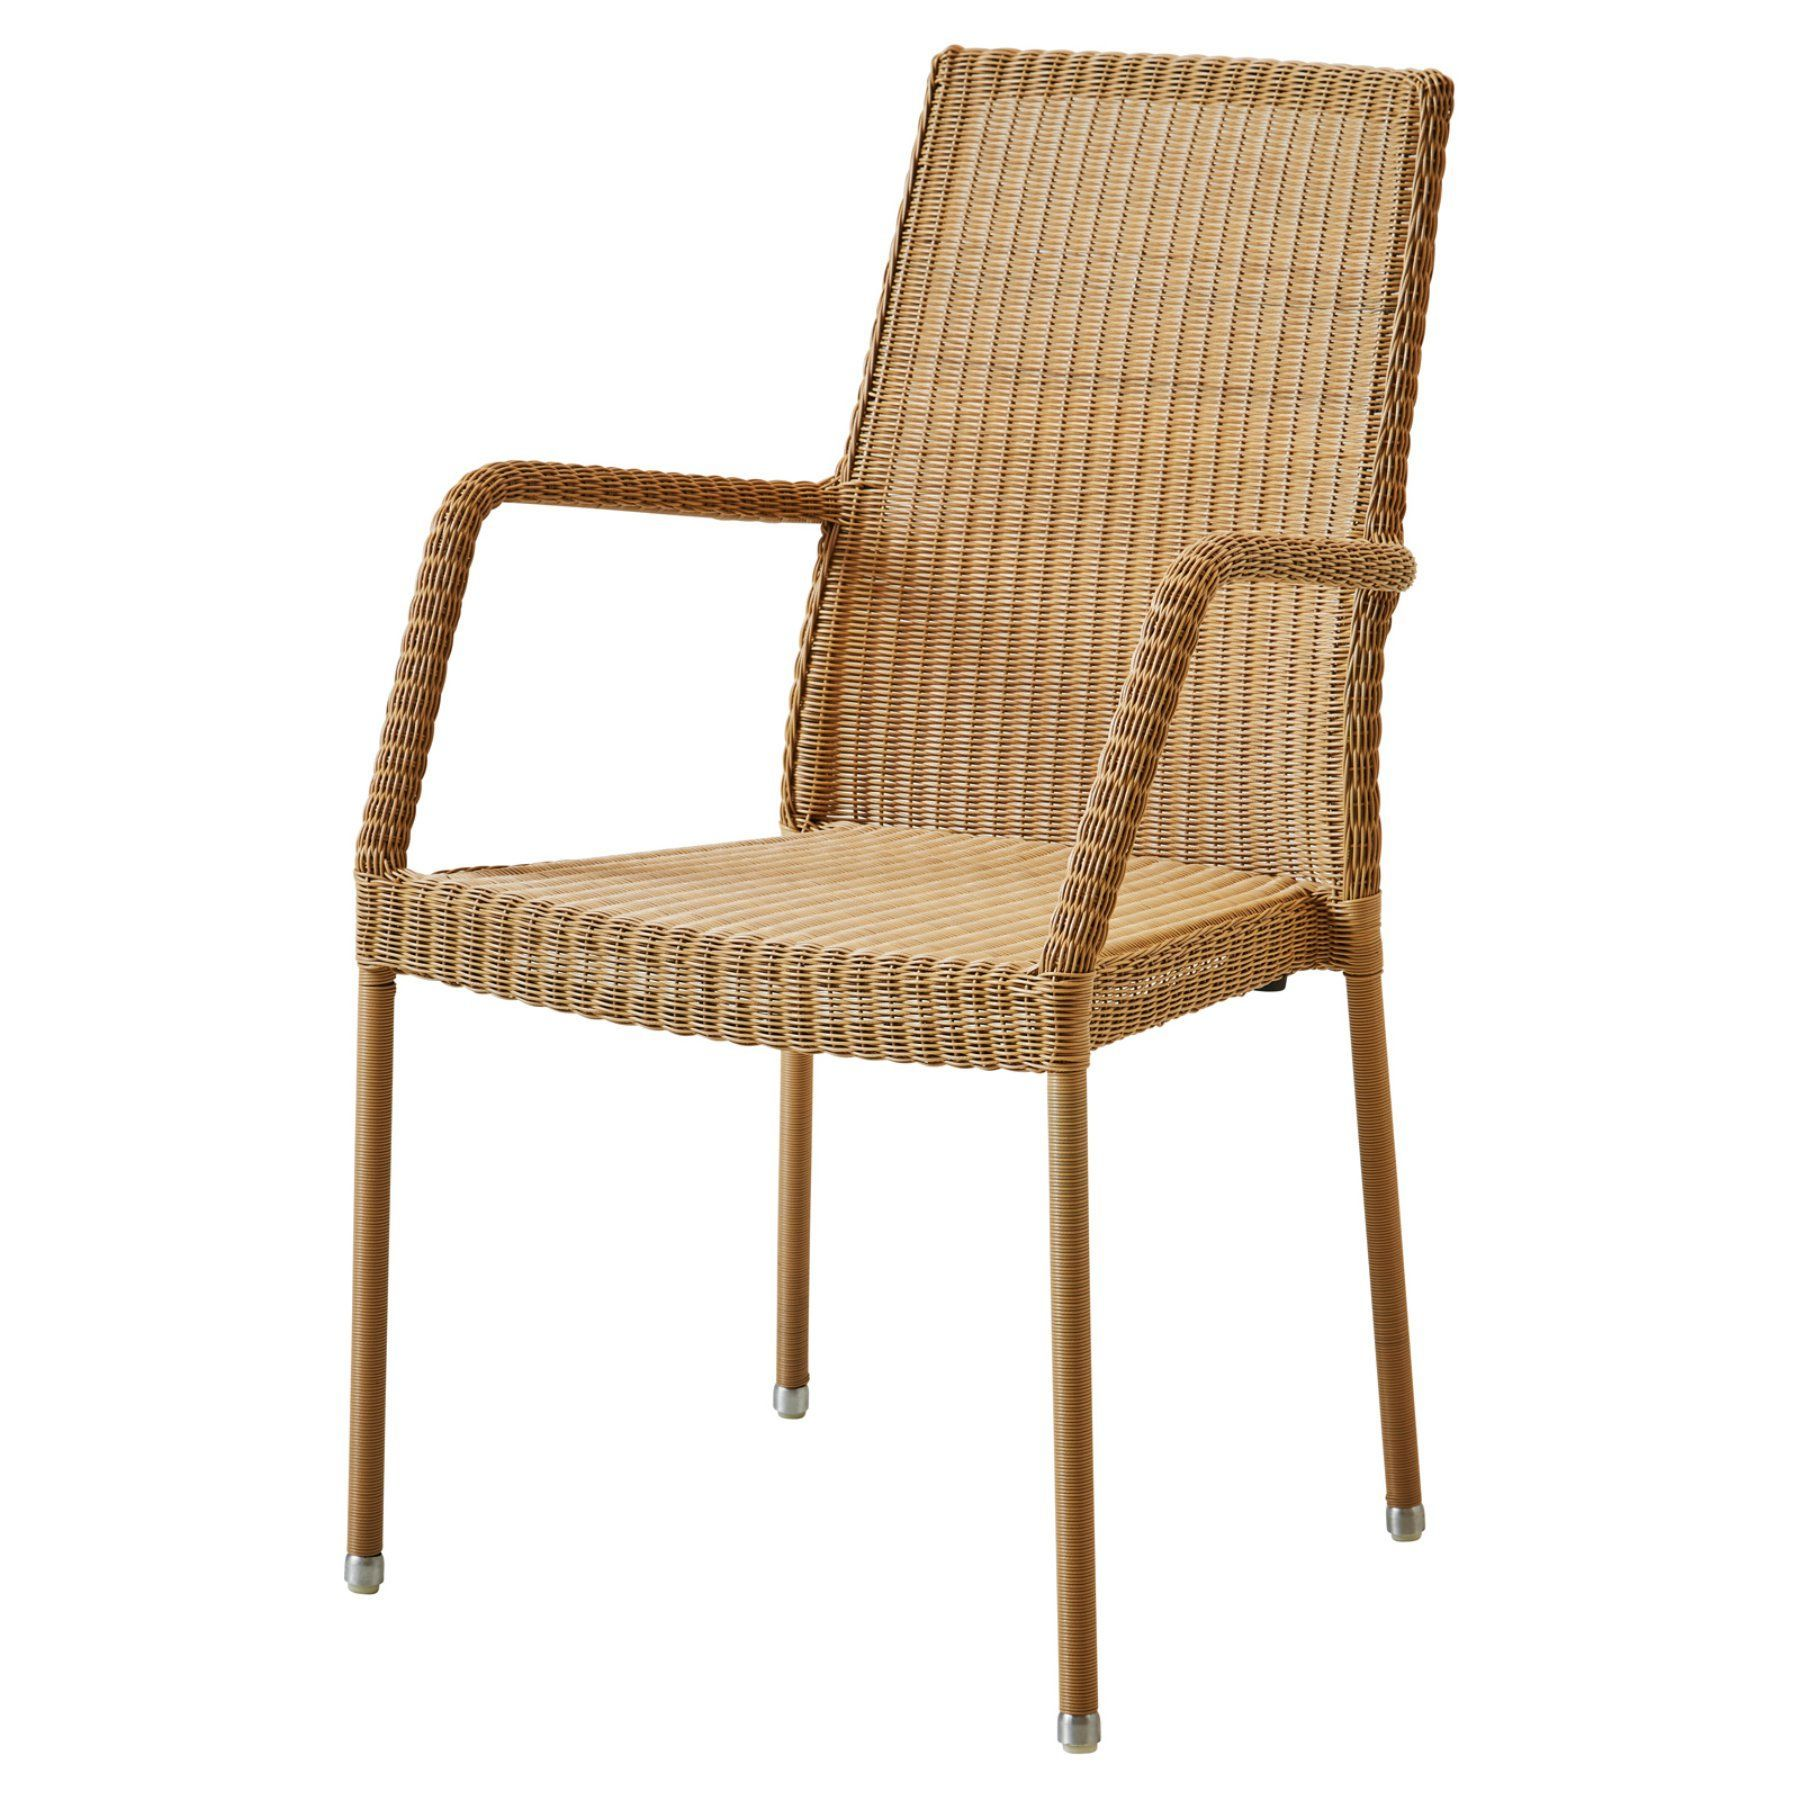 Caneline newman outdoor dining side chair lu outdoor dining